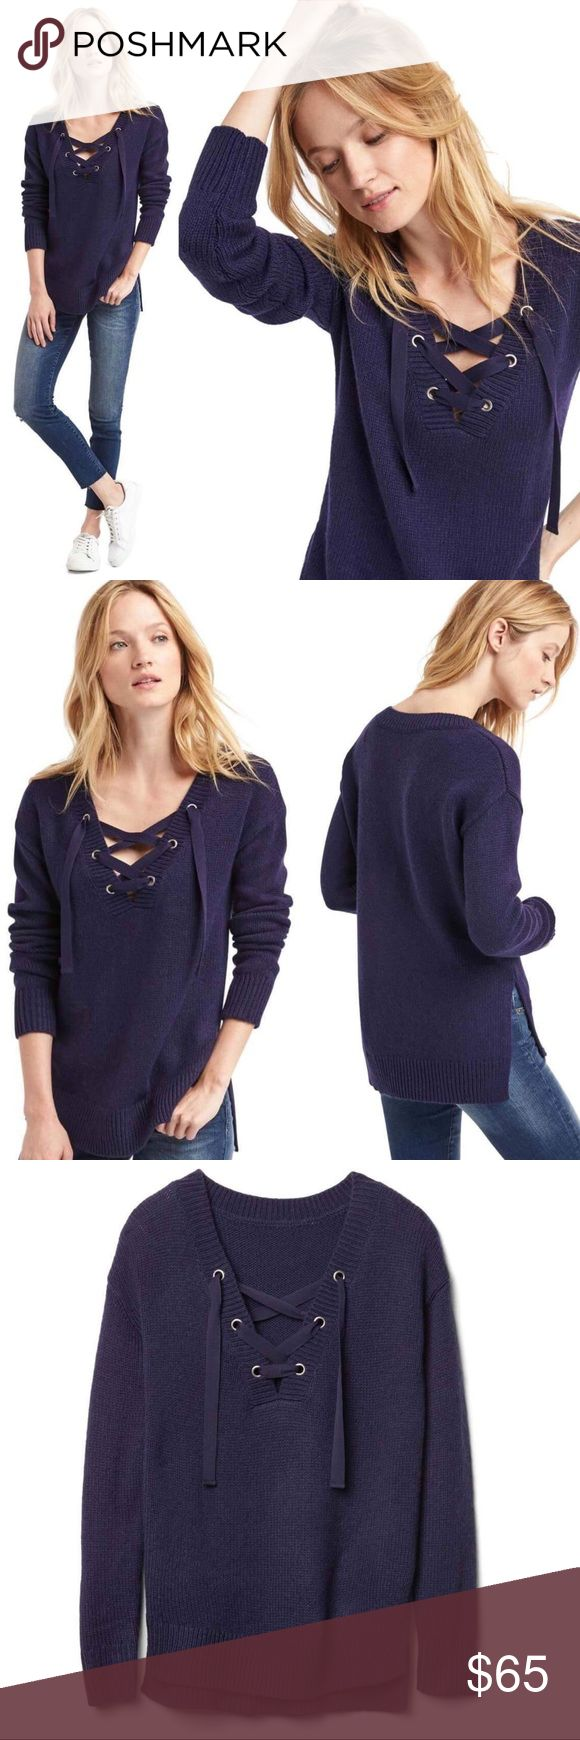 """GAP Shoelace V-Neck Lace Up Xtra Long Sweater Soft, cozy fabric. Low shoulder long sleeve. Deep V-neck with fist detail. Side slits on the skirt. Smooth and comfortable cutting. Sit under the hips. Model is 5'9"""" wearing a size S (Bust 33"""" & Waist 24""""). Machine wash cold and lay flat to dry.  Item Specifics: Brand: GAP Style#: 520368 Color: Navy Blue New with Tags: Yes Orig Price: $79.95 Zipper: No Length: 26.5"""" Materials: 60% acrylic, 30% wool, 10% linen GAP Sweaters V-Necks"""